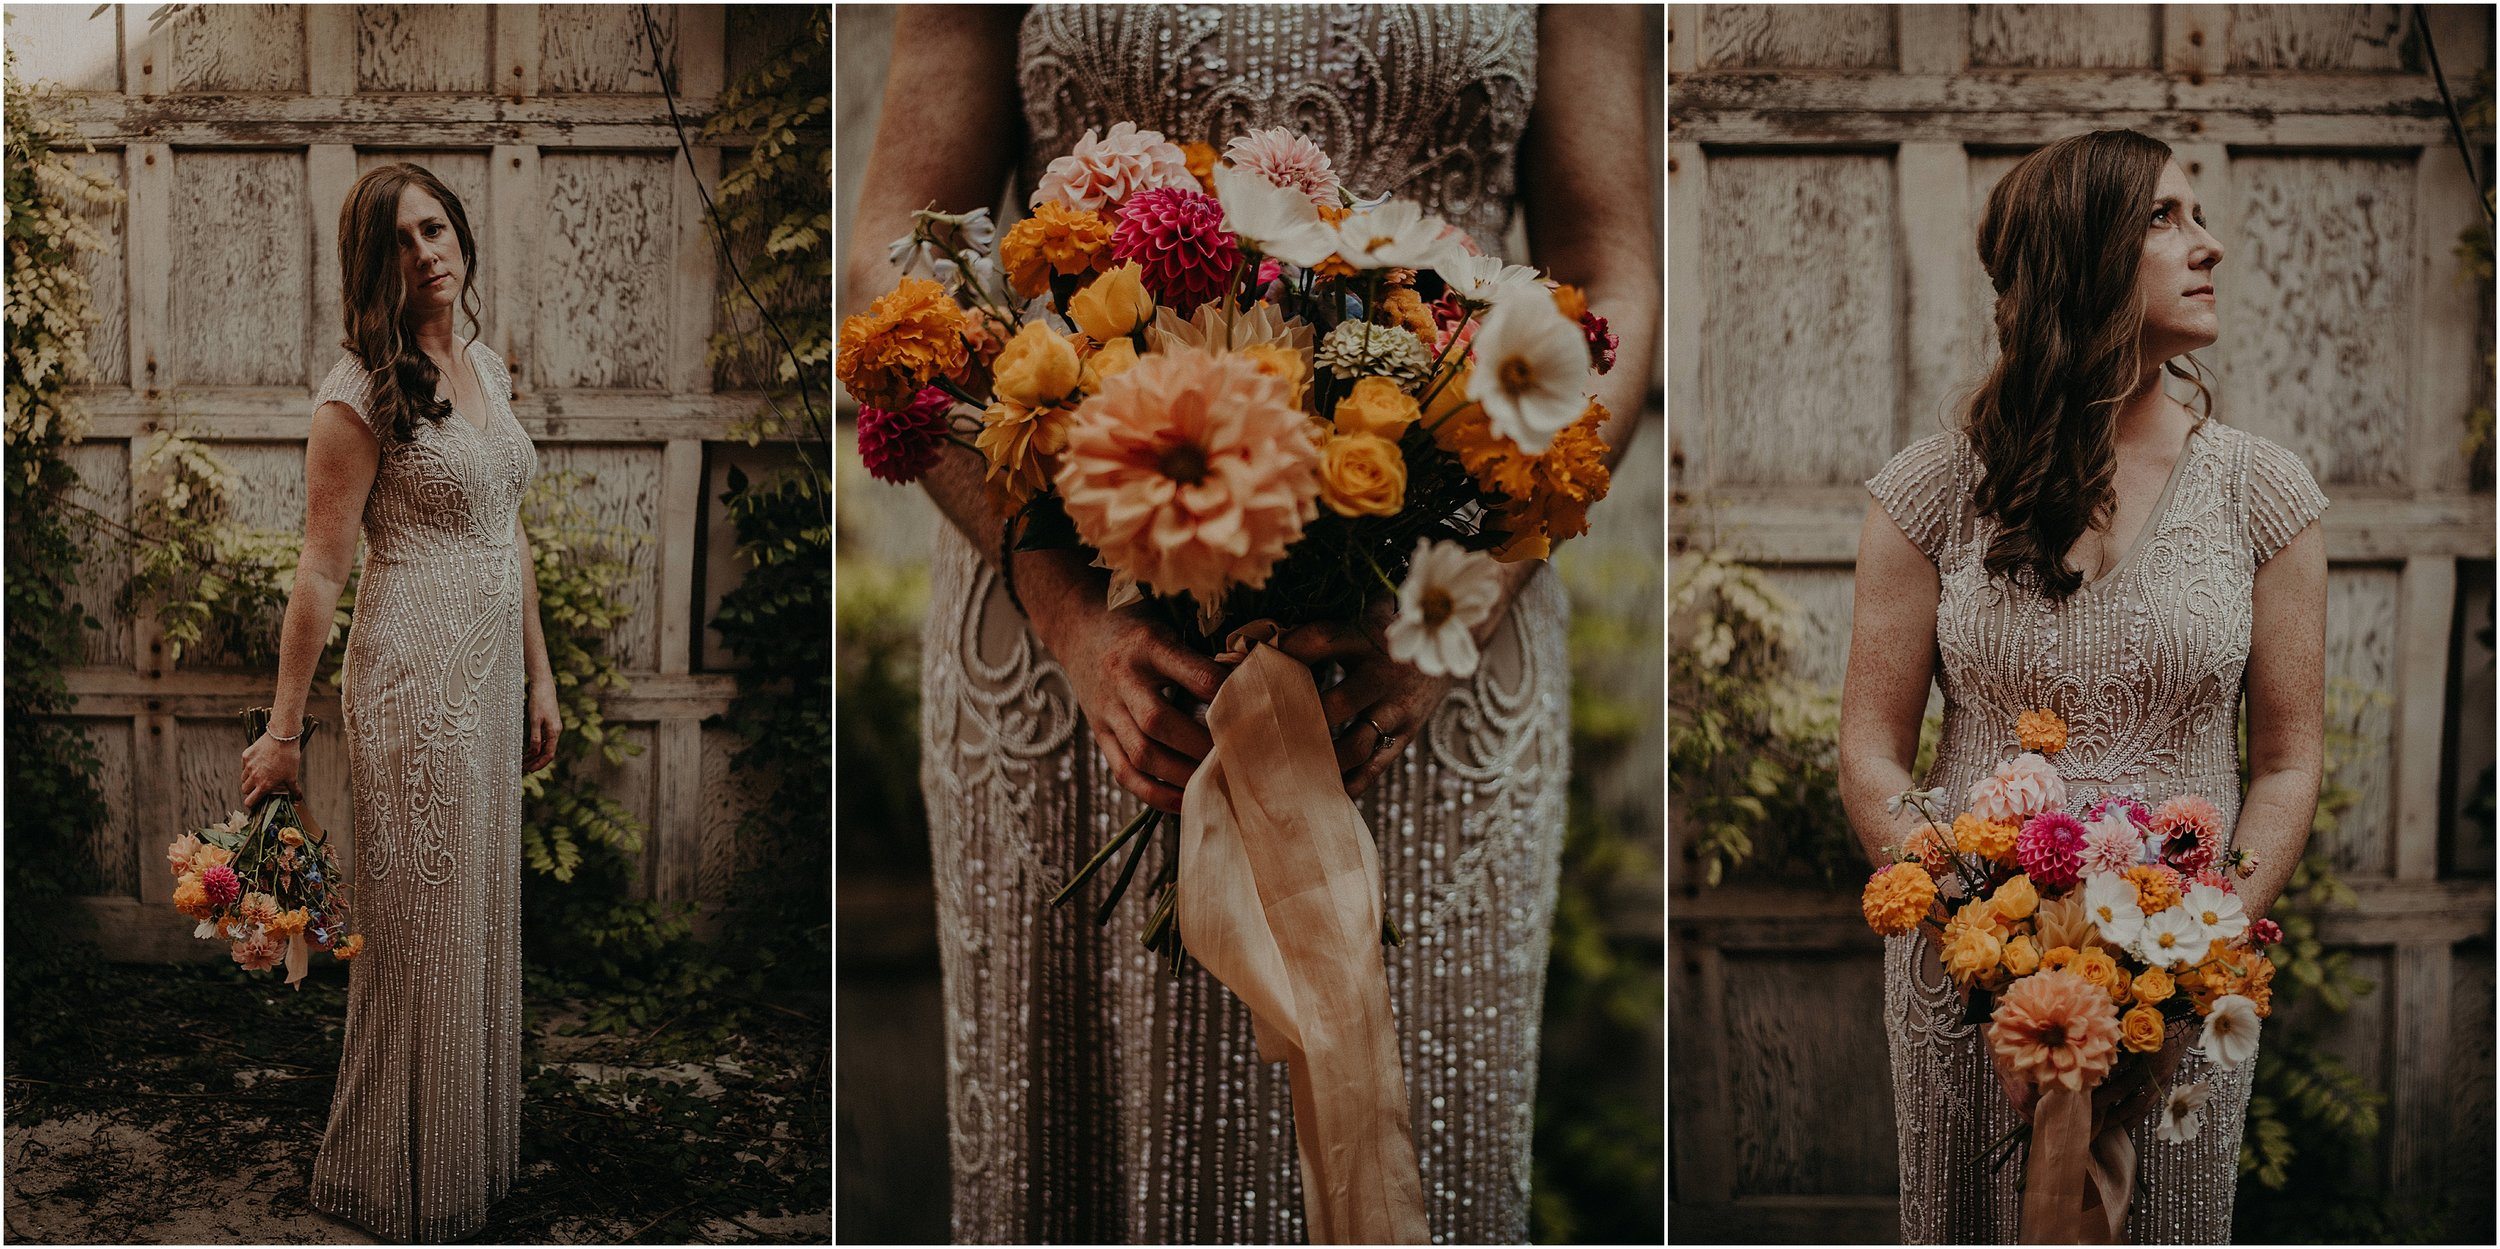 The brides wear a beaded champagne BHLDN gown with vibrant florals from Southerly Flowers Farm